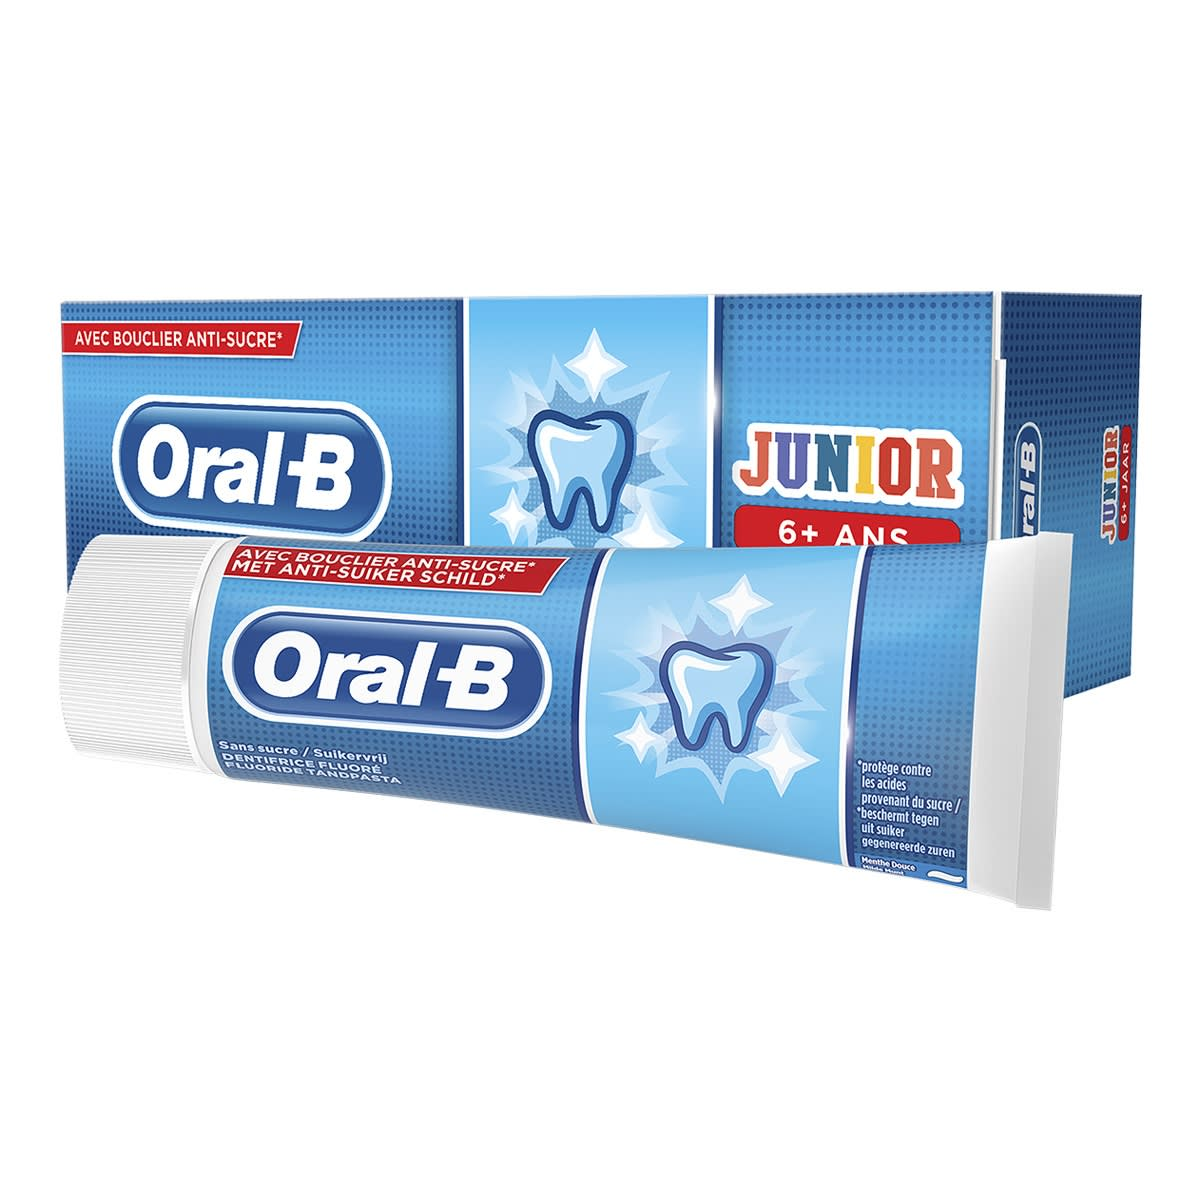 Oral-B Junior 6+ Tandpasta | Oral-B